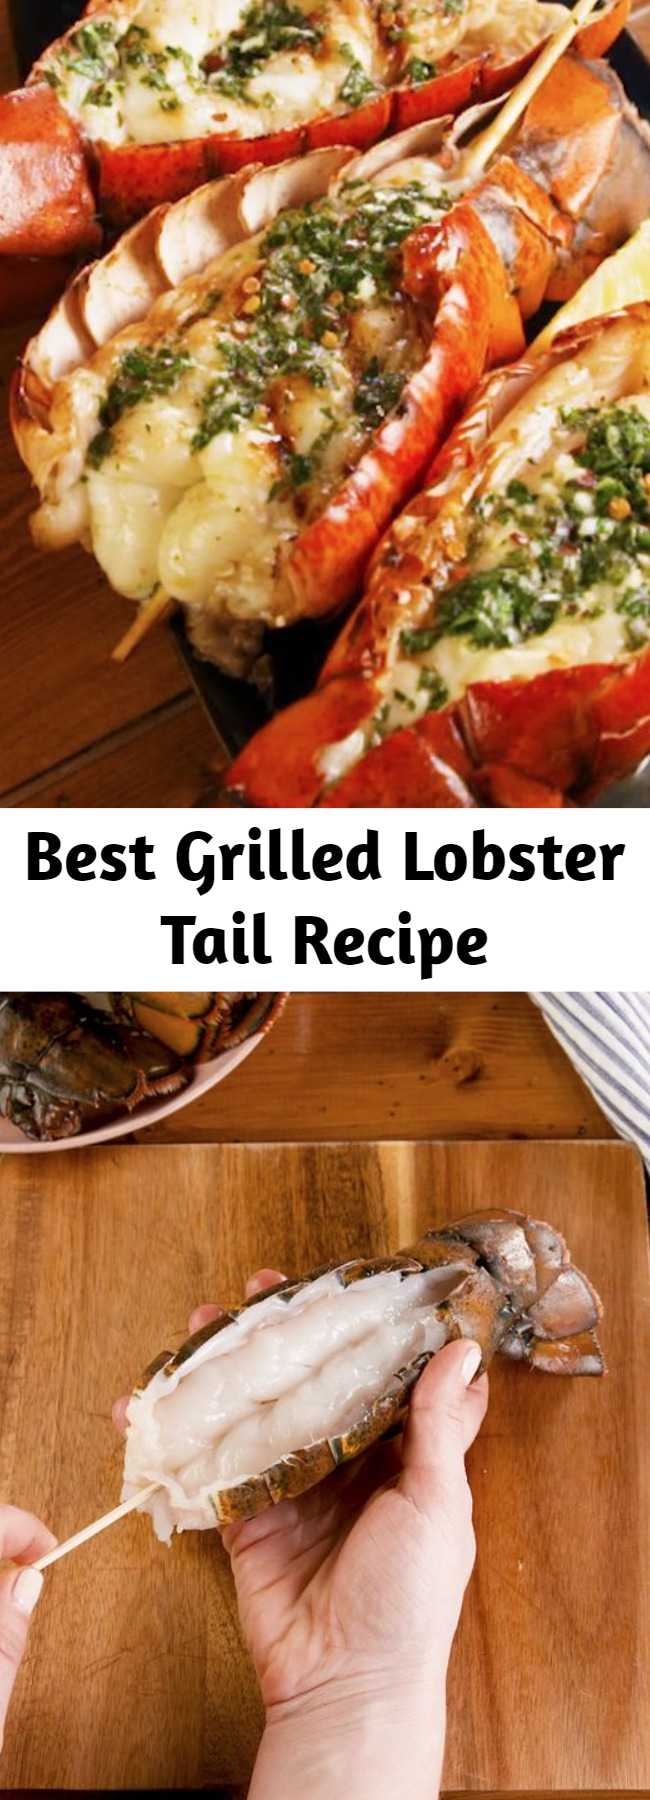 Best Grilled Lobster Tail Recipe - Lobster tail is kinda expensive, and therefore it seems pretty fancy. But it's actually incredibly easy to make. This recipe comes together in under 30 minutes and is the perfect dinner to make for a special occasion. The herb butter is PERFECT. #grilledlobster #lobstertail #howtogrilllobster #grilling #seafood #lobster